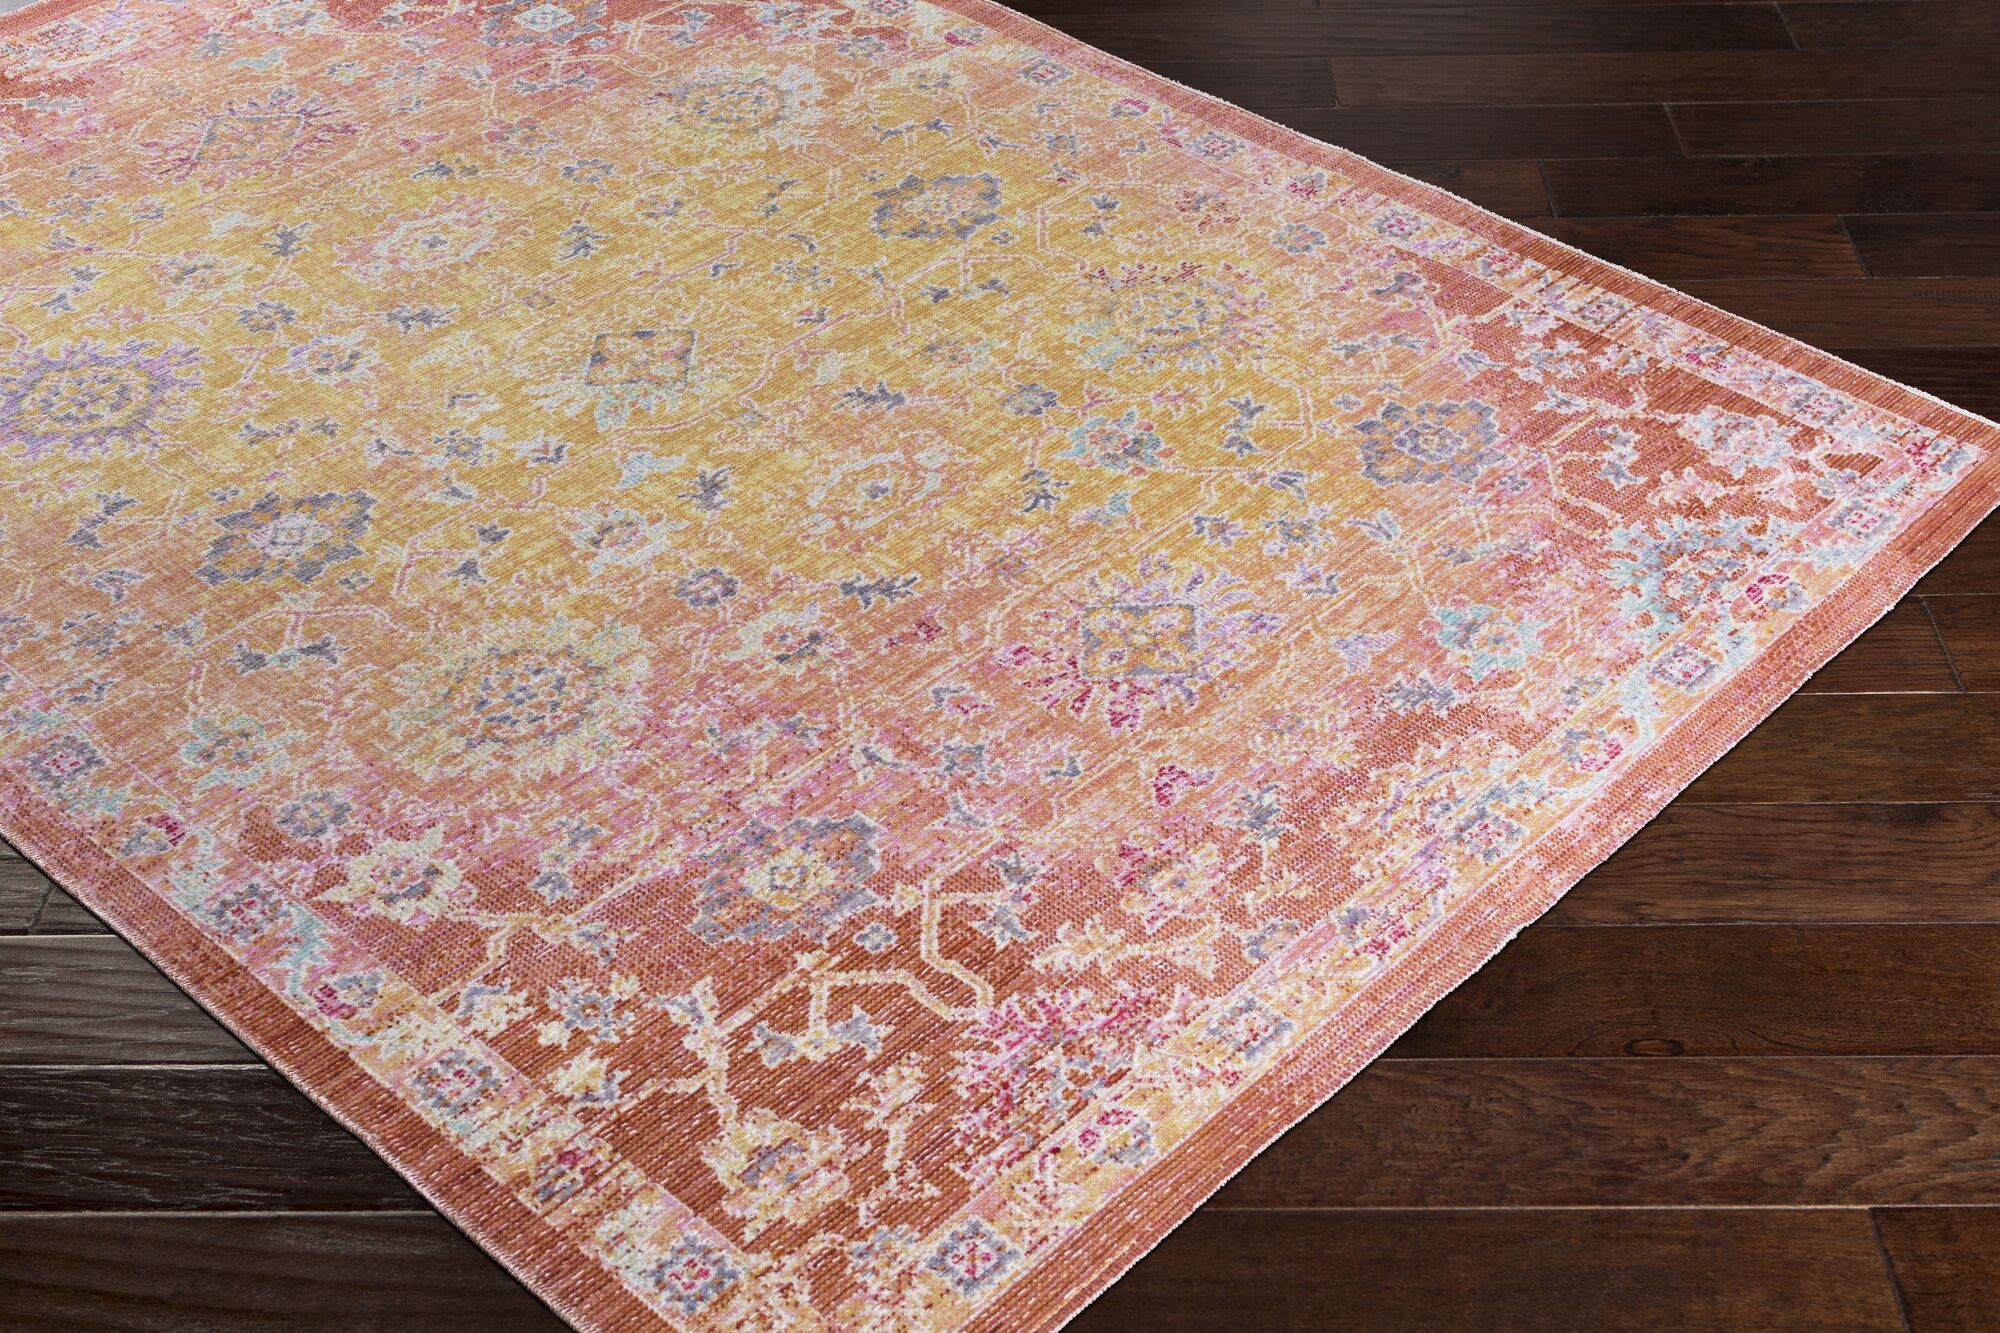 Lyngby-Taarbæk Classic Bright Yellow Area Rug Rug Size: Rectangle 9'3